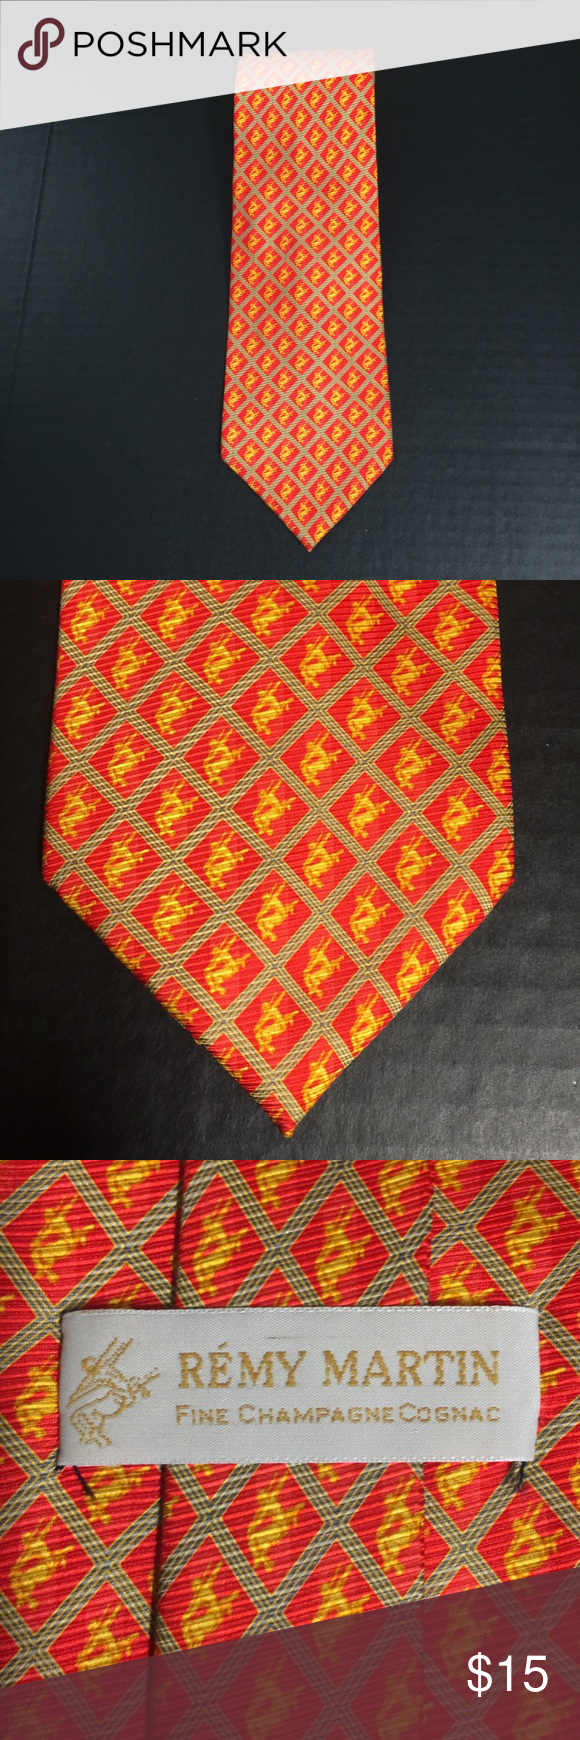 Men S Vtg Remy Martin Logo Tie New Red And Yellow Logo Unique Ties Vibrant Red